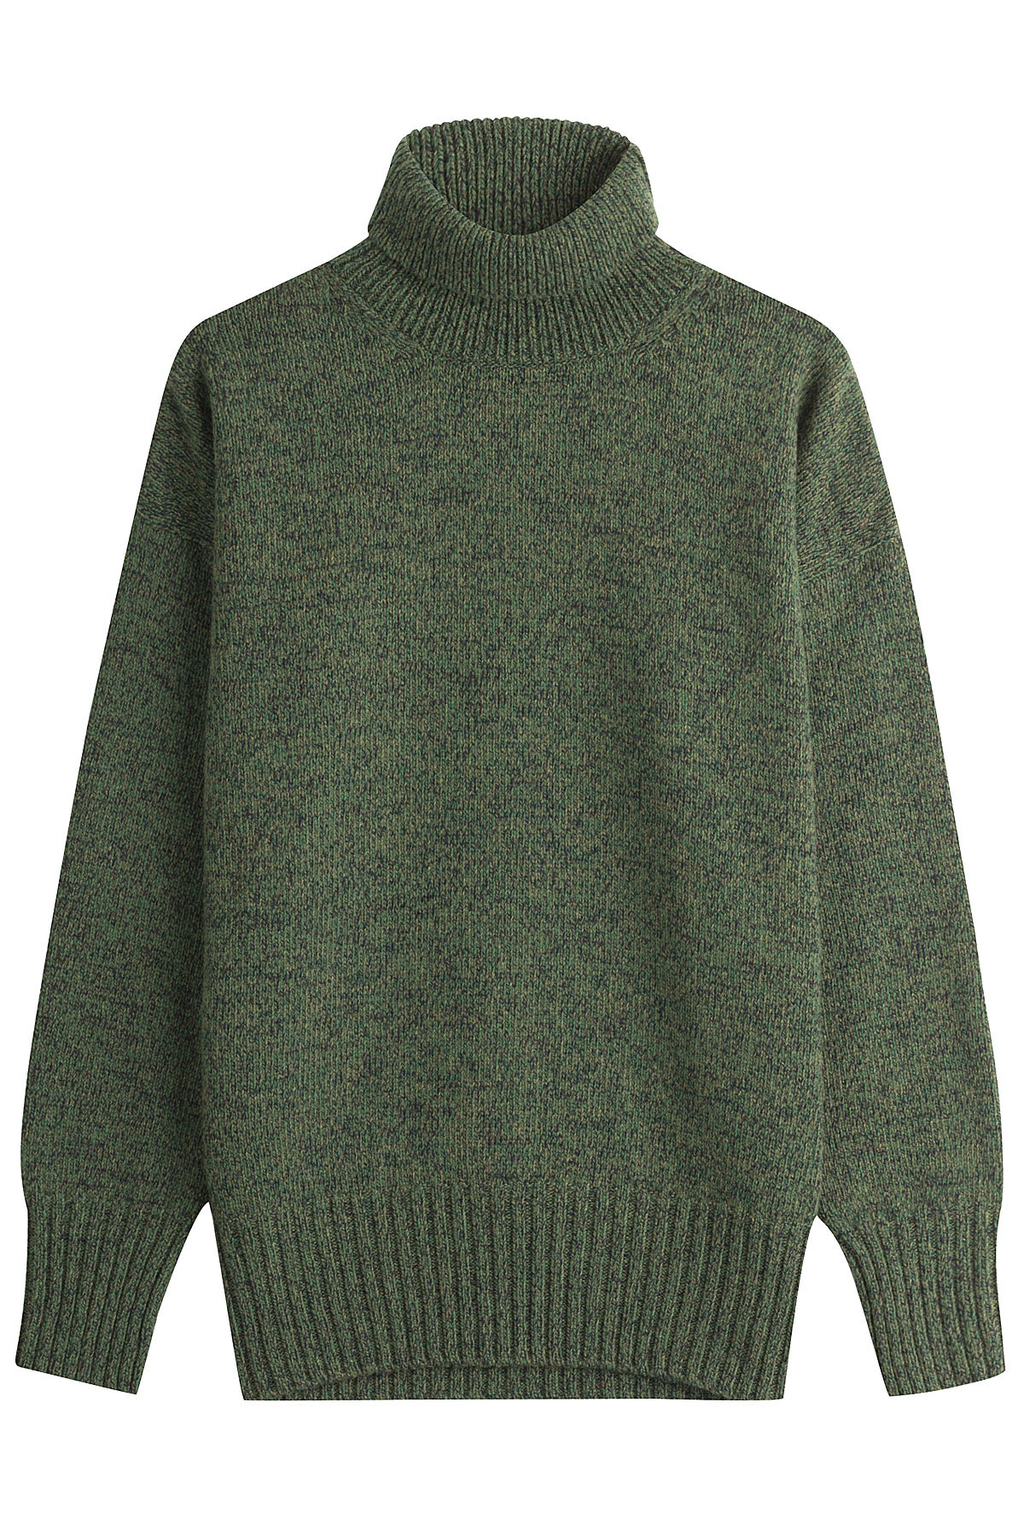 Merino Wool Pullover Green - pattern: plain; length: below the bottom; neckline: roll neck; style: standard; predominant colour: khaki; occasions: casual, creative work; fibres: wool - 100%; fit: loose; sleeve length: long sleeve; sleeve style: standard; texture group: knits/crochet; pattern type: knitted - other; season: a/w 2016